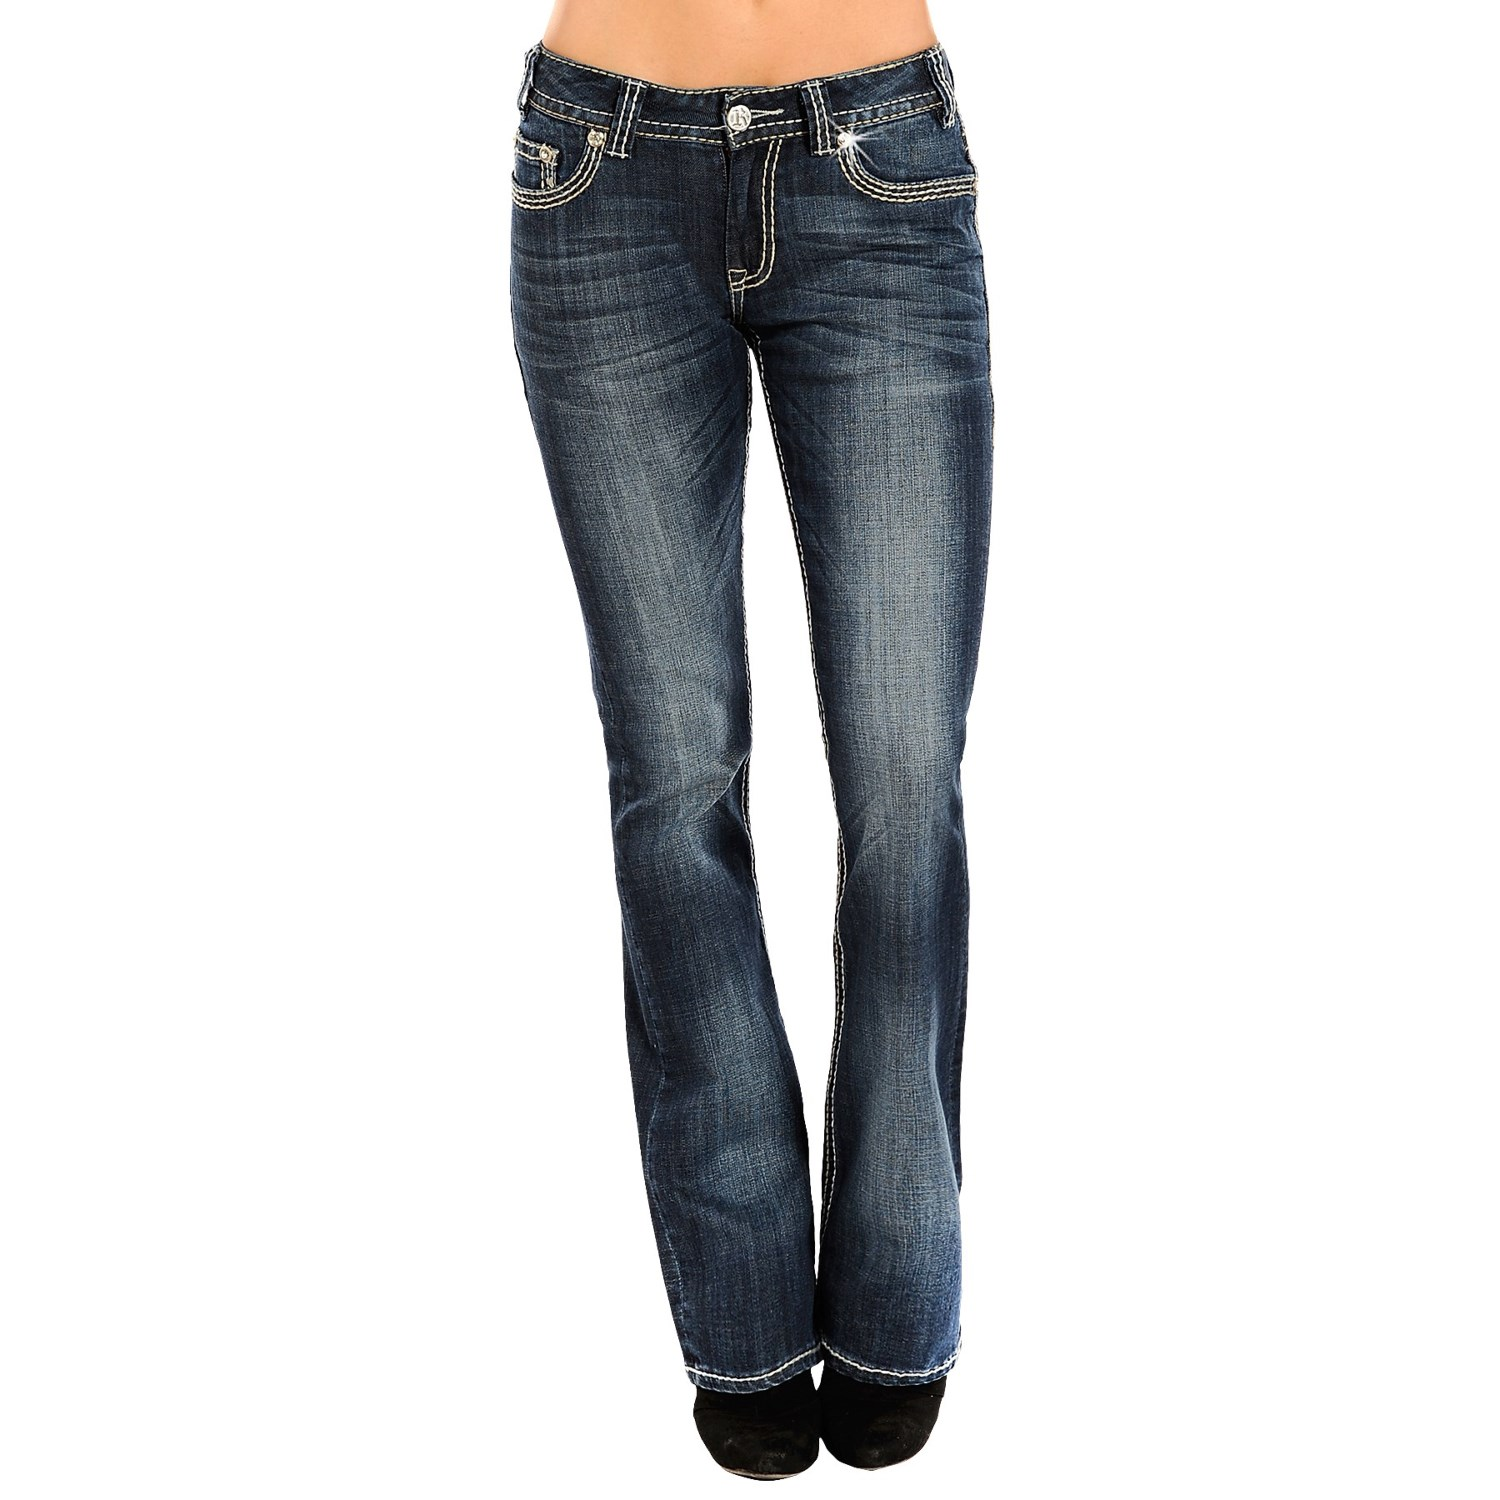 Rock roll cowgirl abstract embroidered jeans mid rise